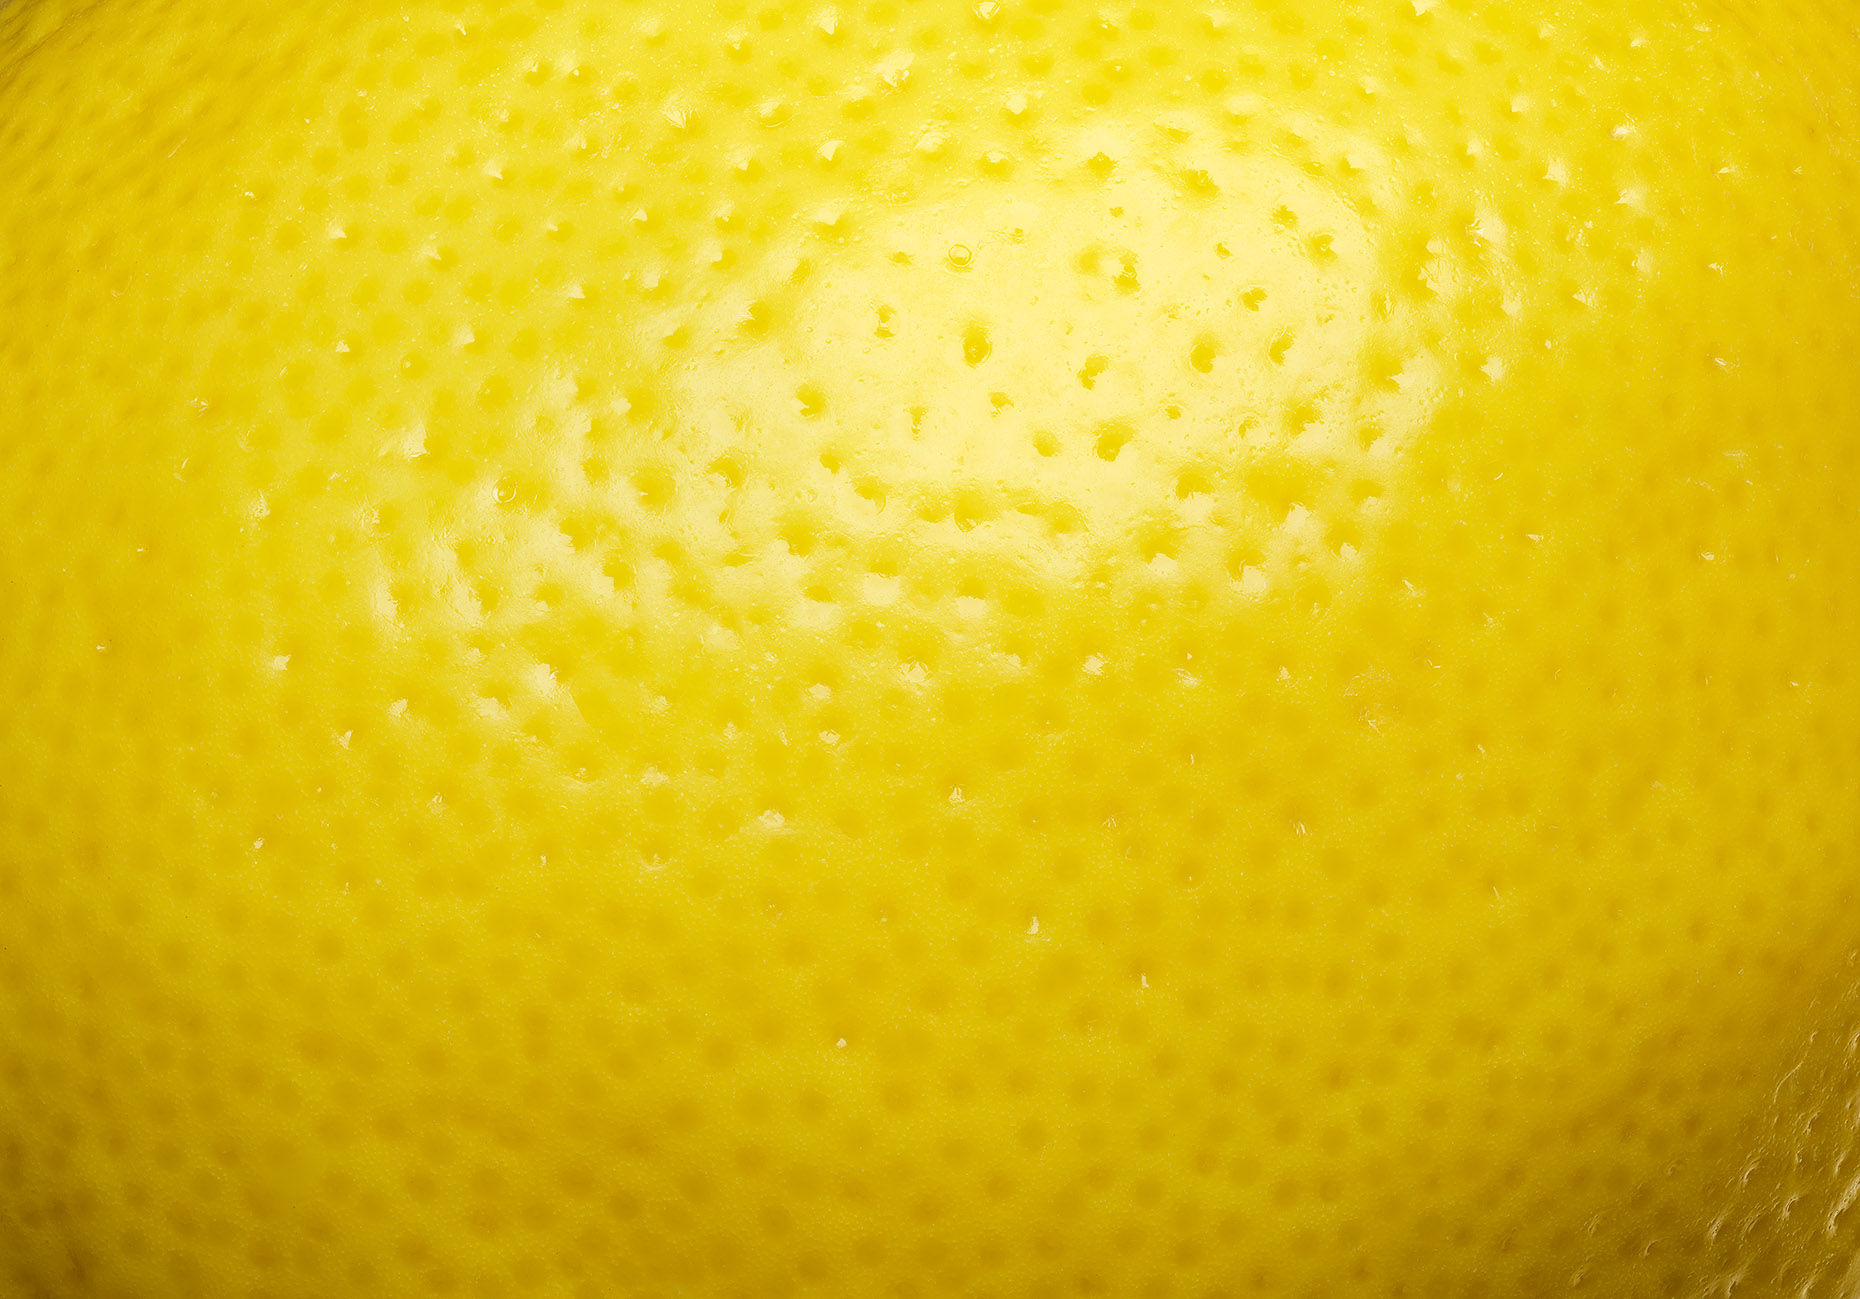 Lemon_FINAL_FullRes